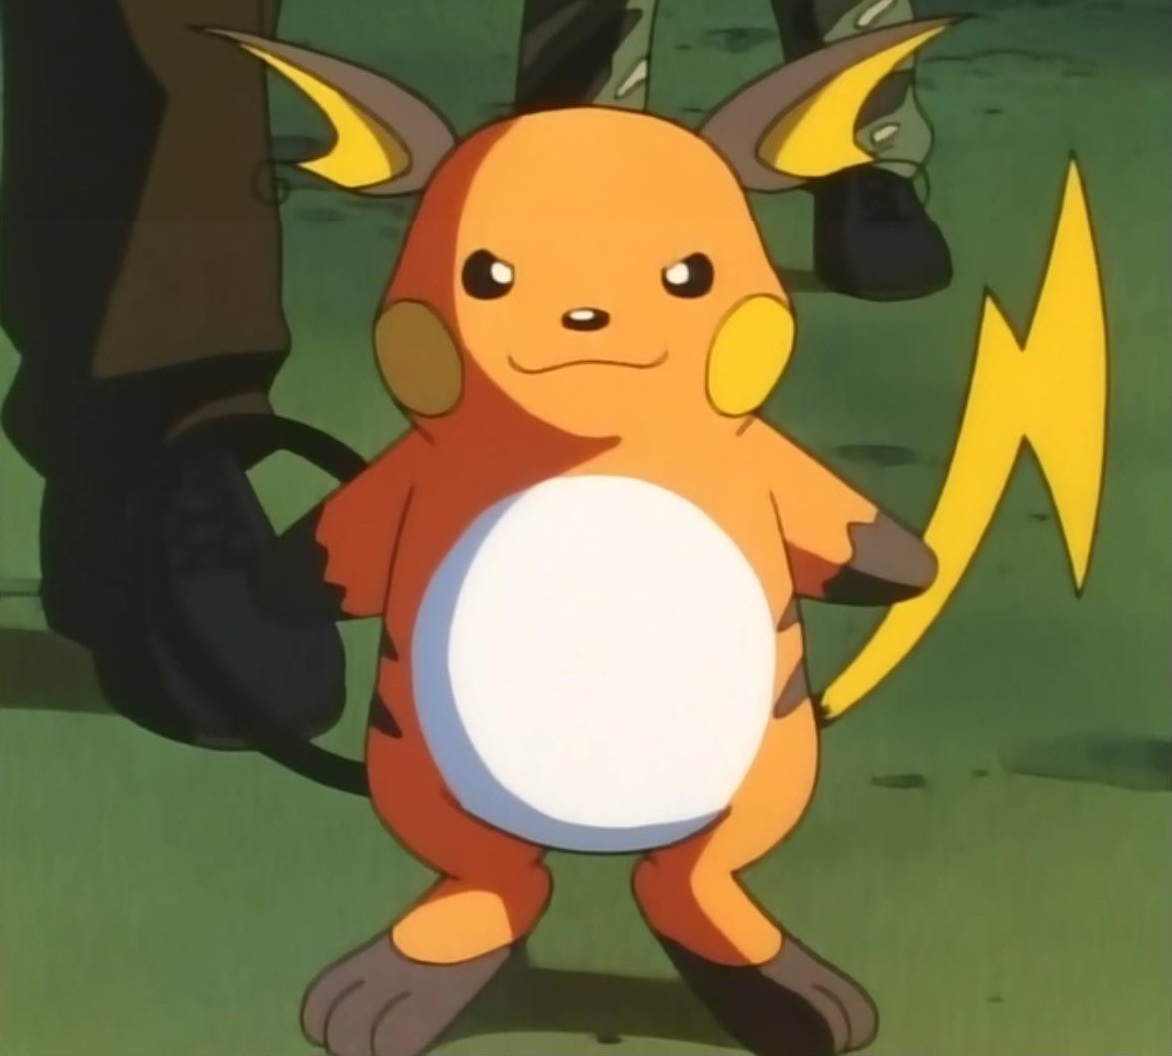 Lt. Surge used Raichu to battle Ash. Lt. Surge used a Thunder Stone to evolve his Raichu for new moves, though Raichu's speed is limited.